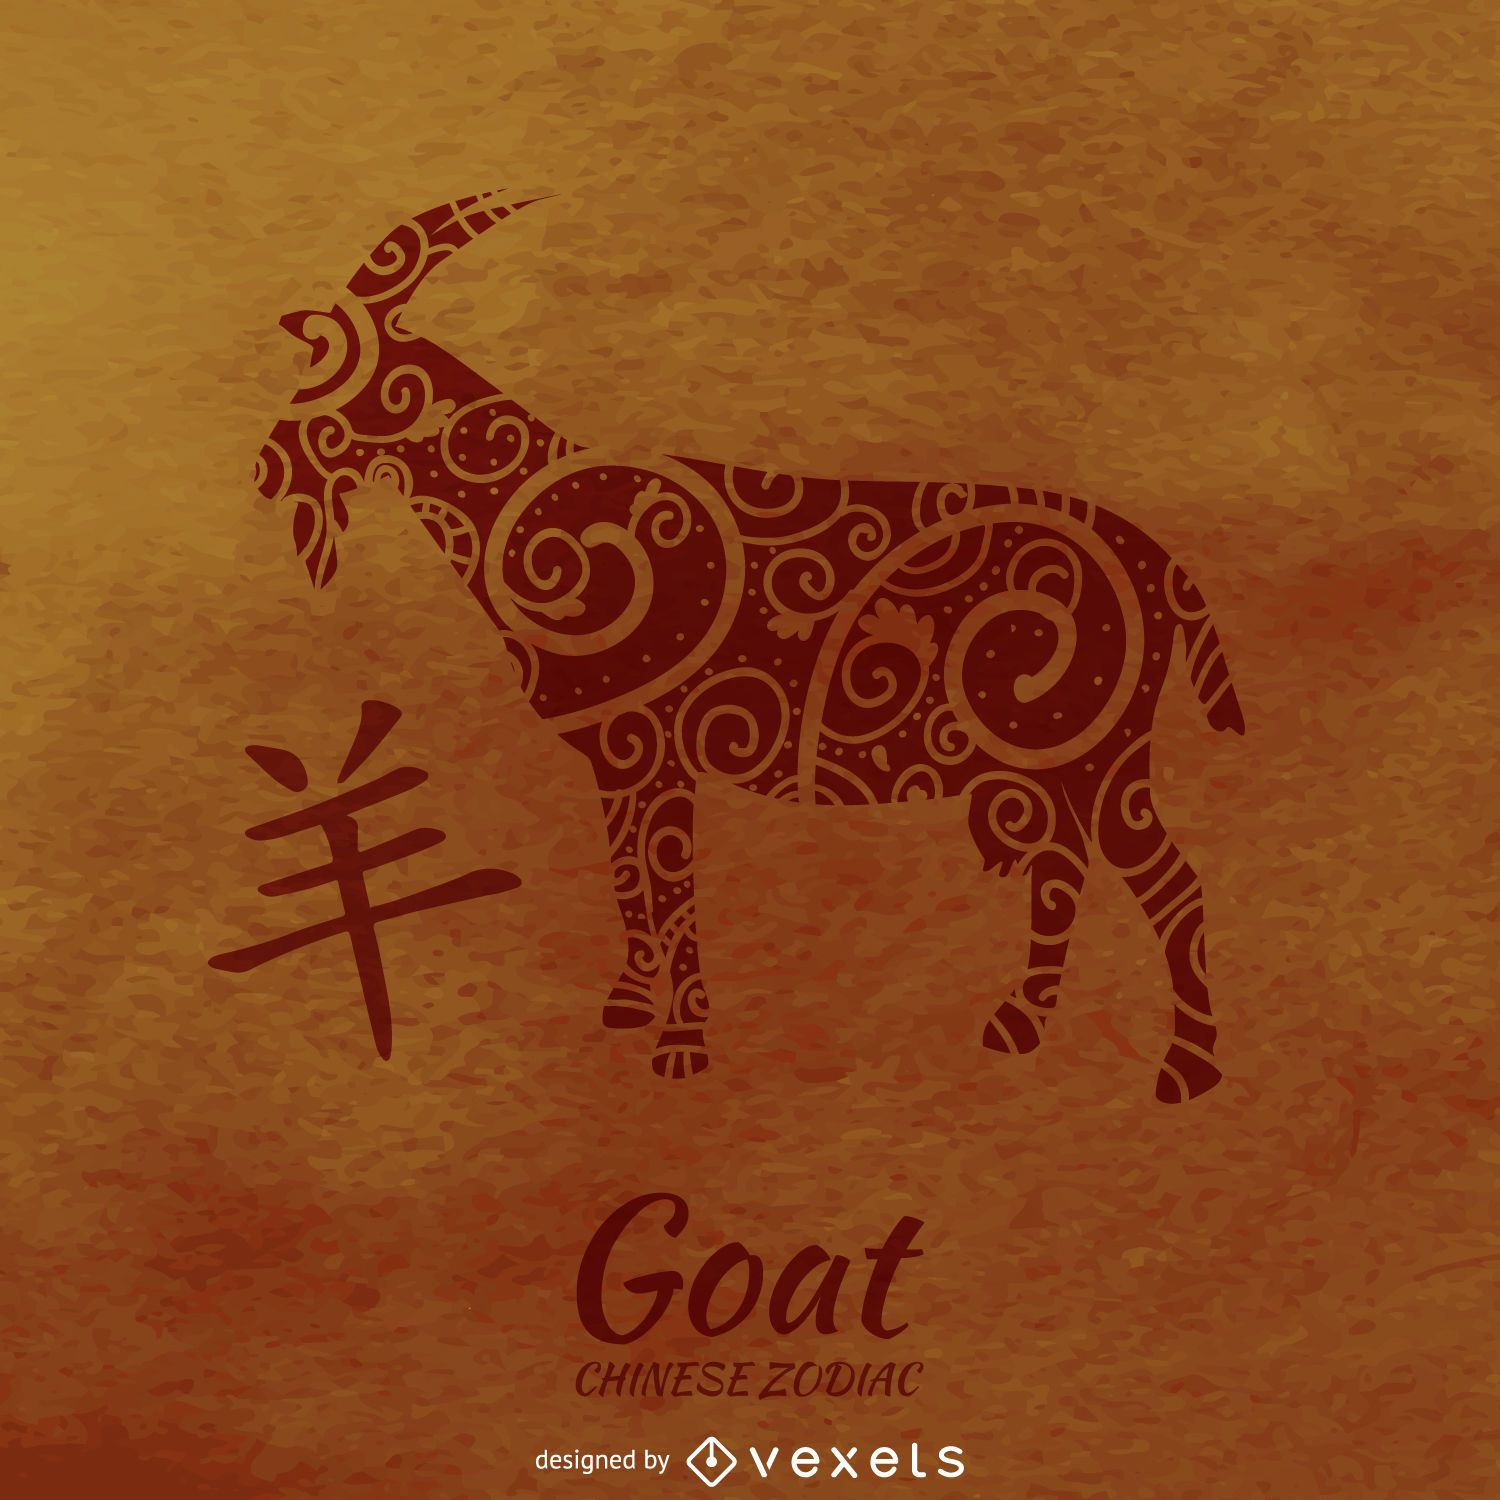 Zodiac signs wheel vector download chinese horoscope goat illustration biocorpaavc Images